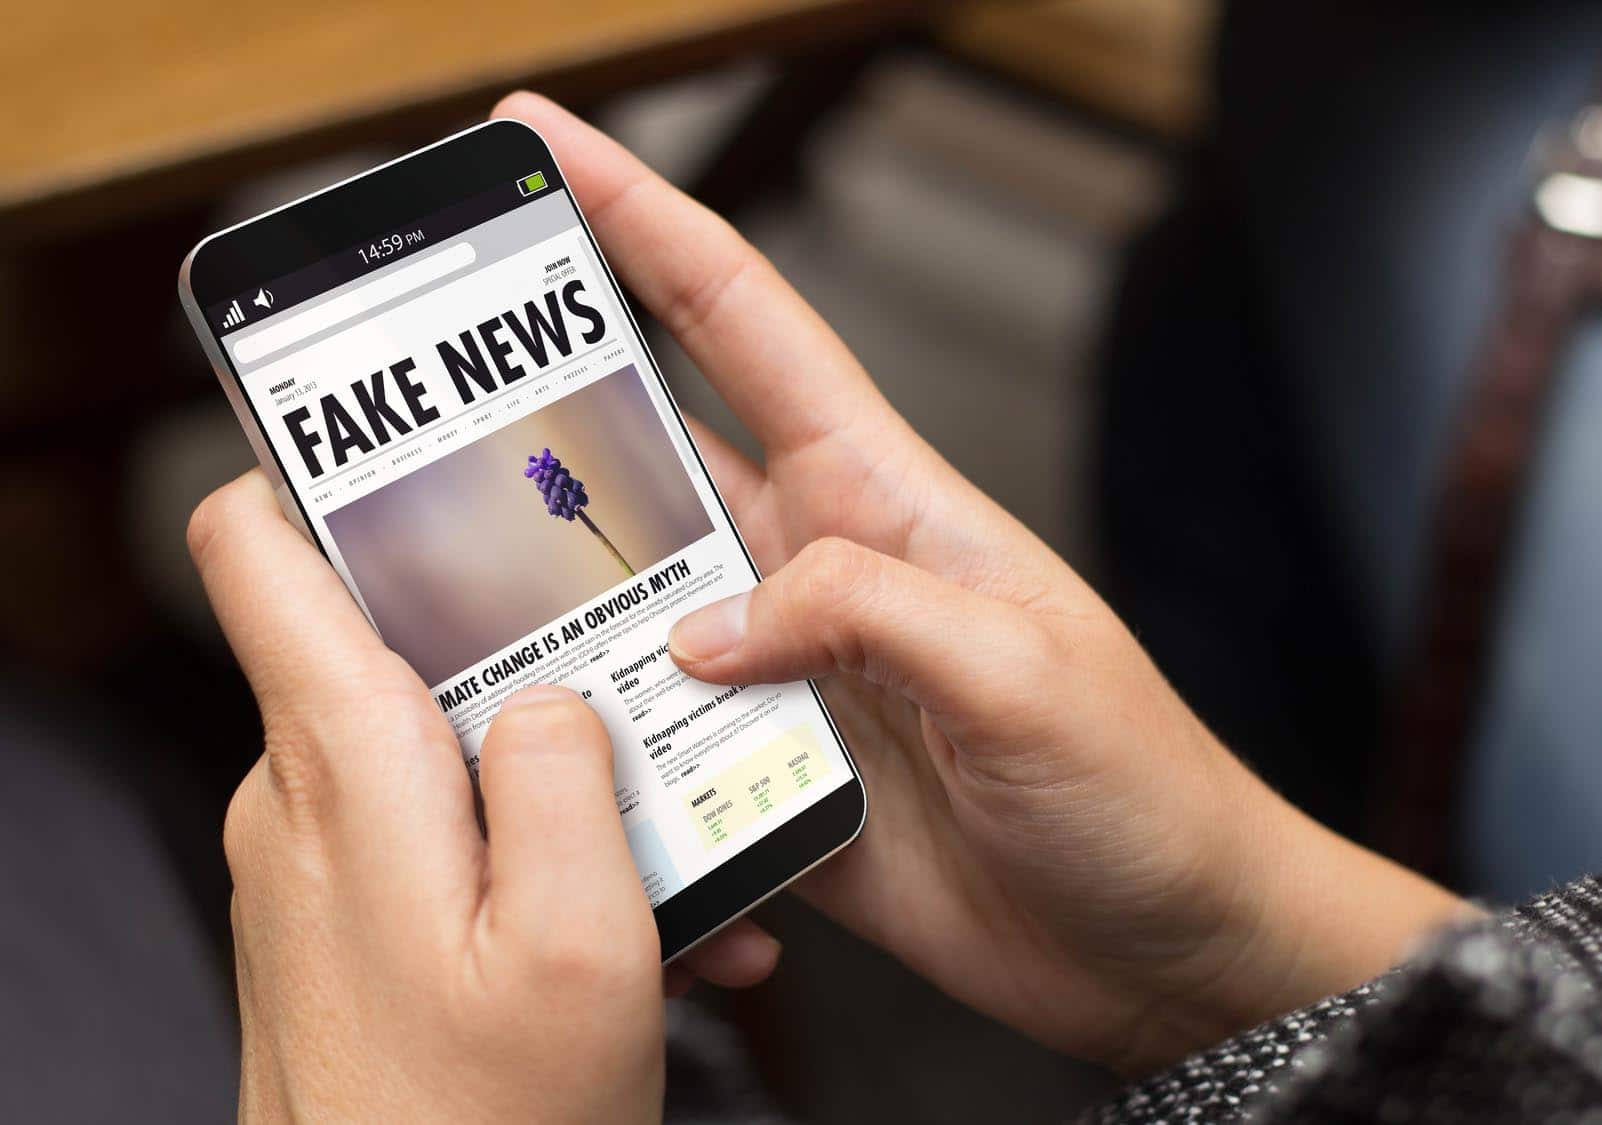 Communication tips based on fake news